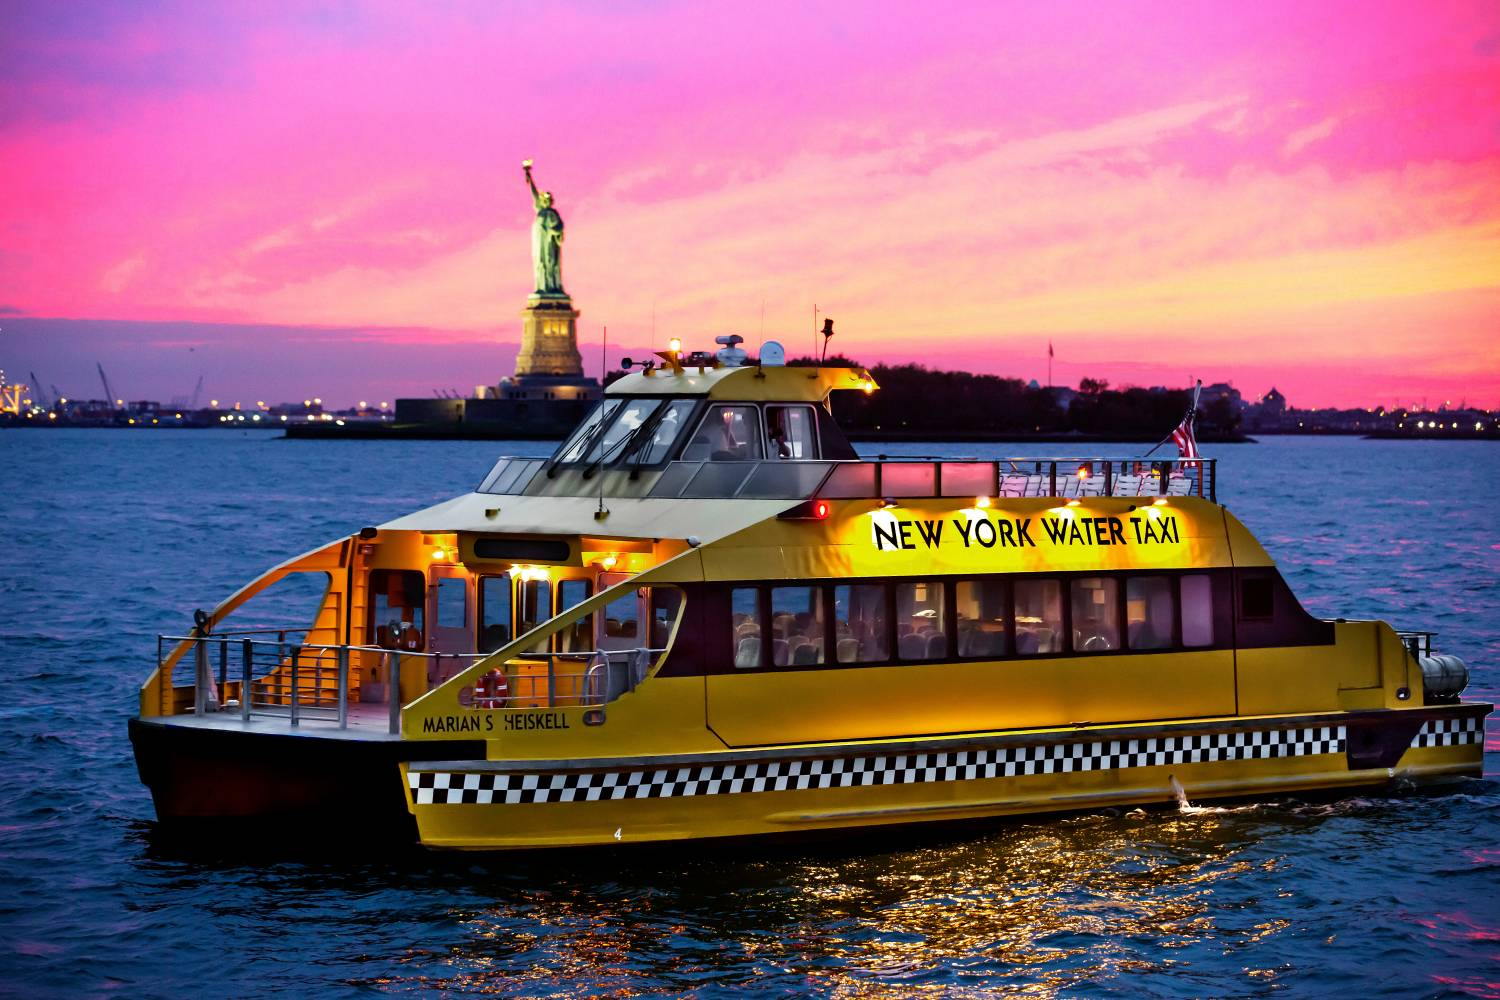 New York Water Taxi statue of liberty at dusk